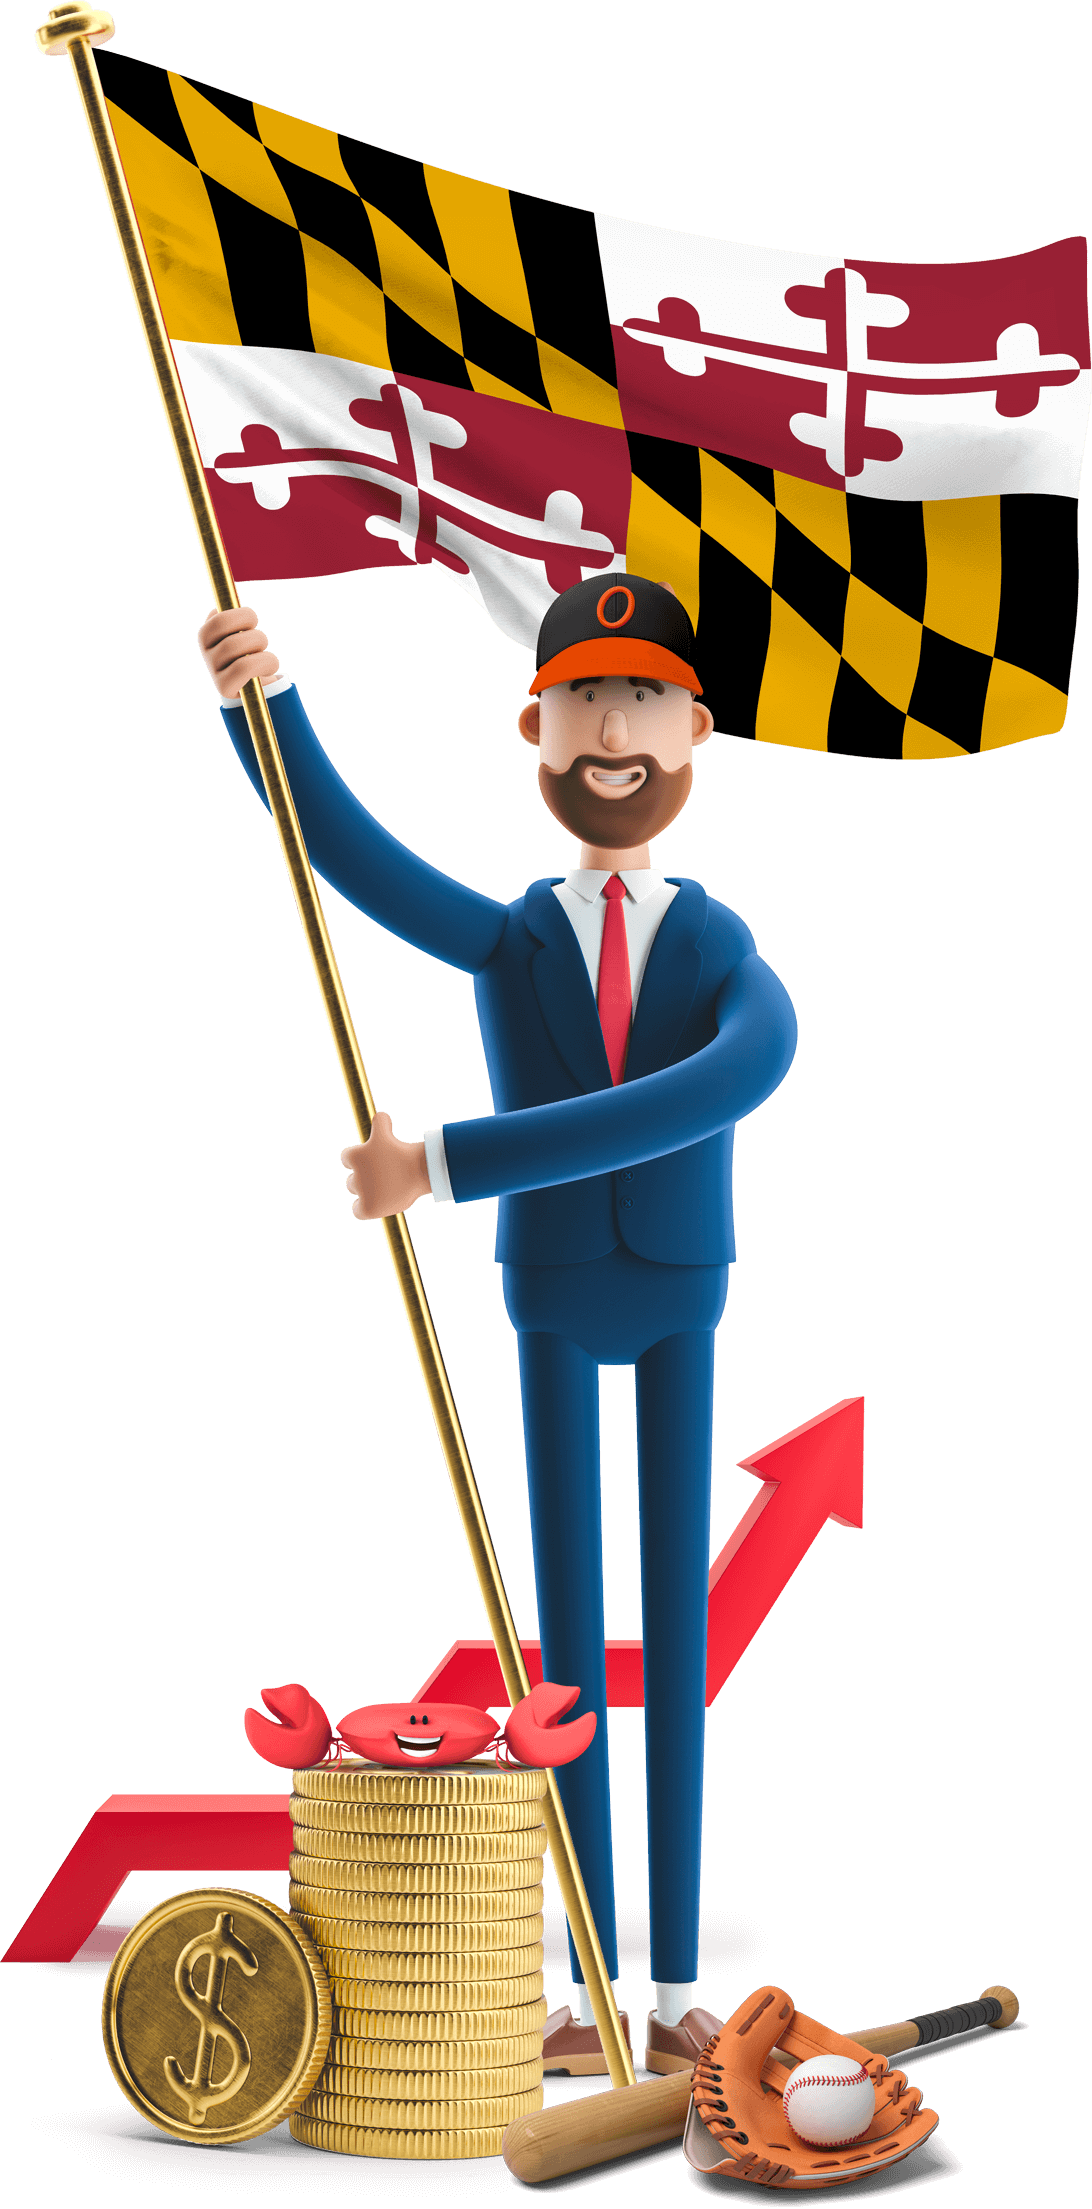 Maryland flag held by MetCredit USA businessman who's wearing a baseball cap and has a bat, glove and ball at this feet. There's also a crab on a stack of oversized coins.